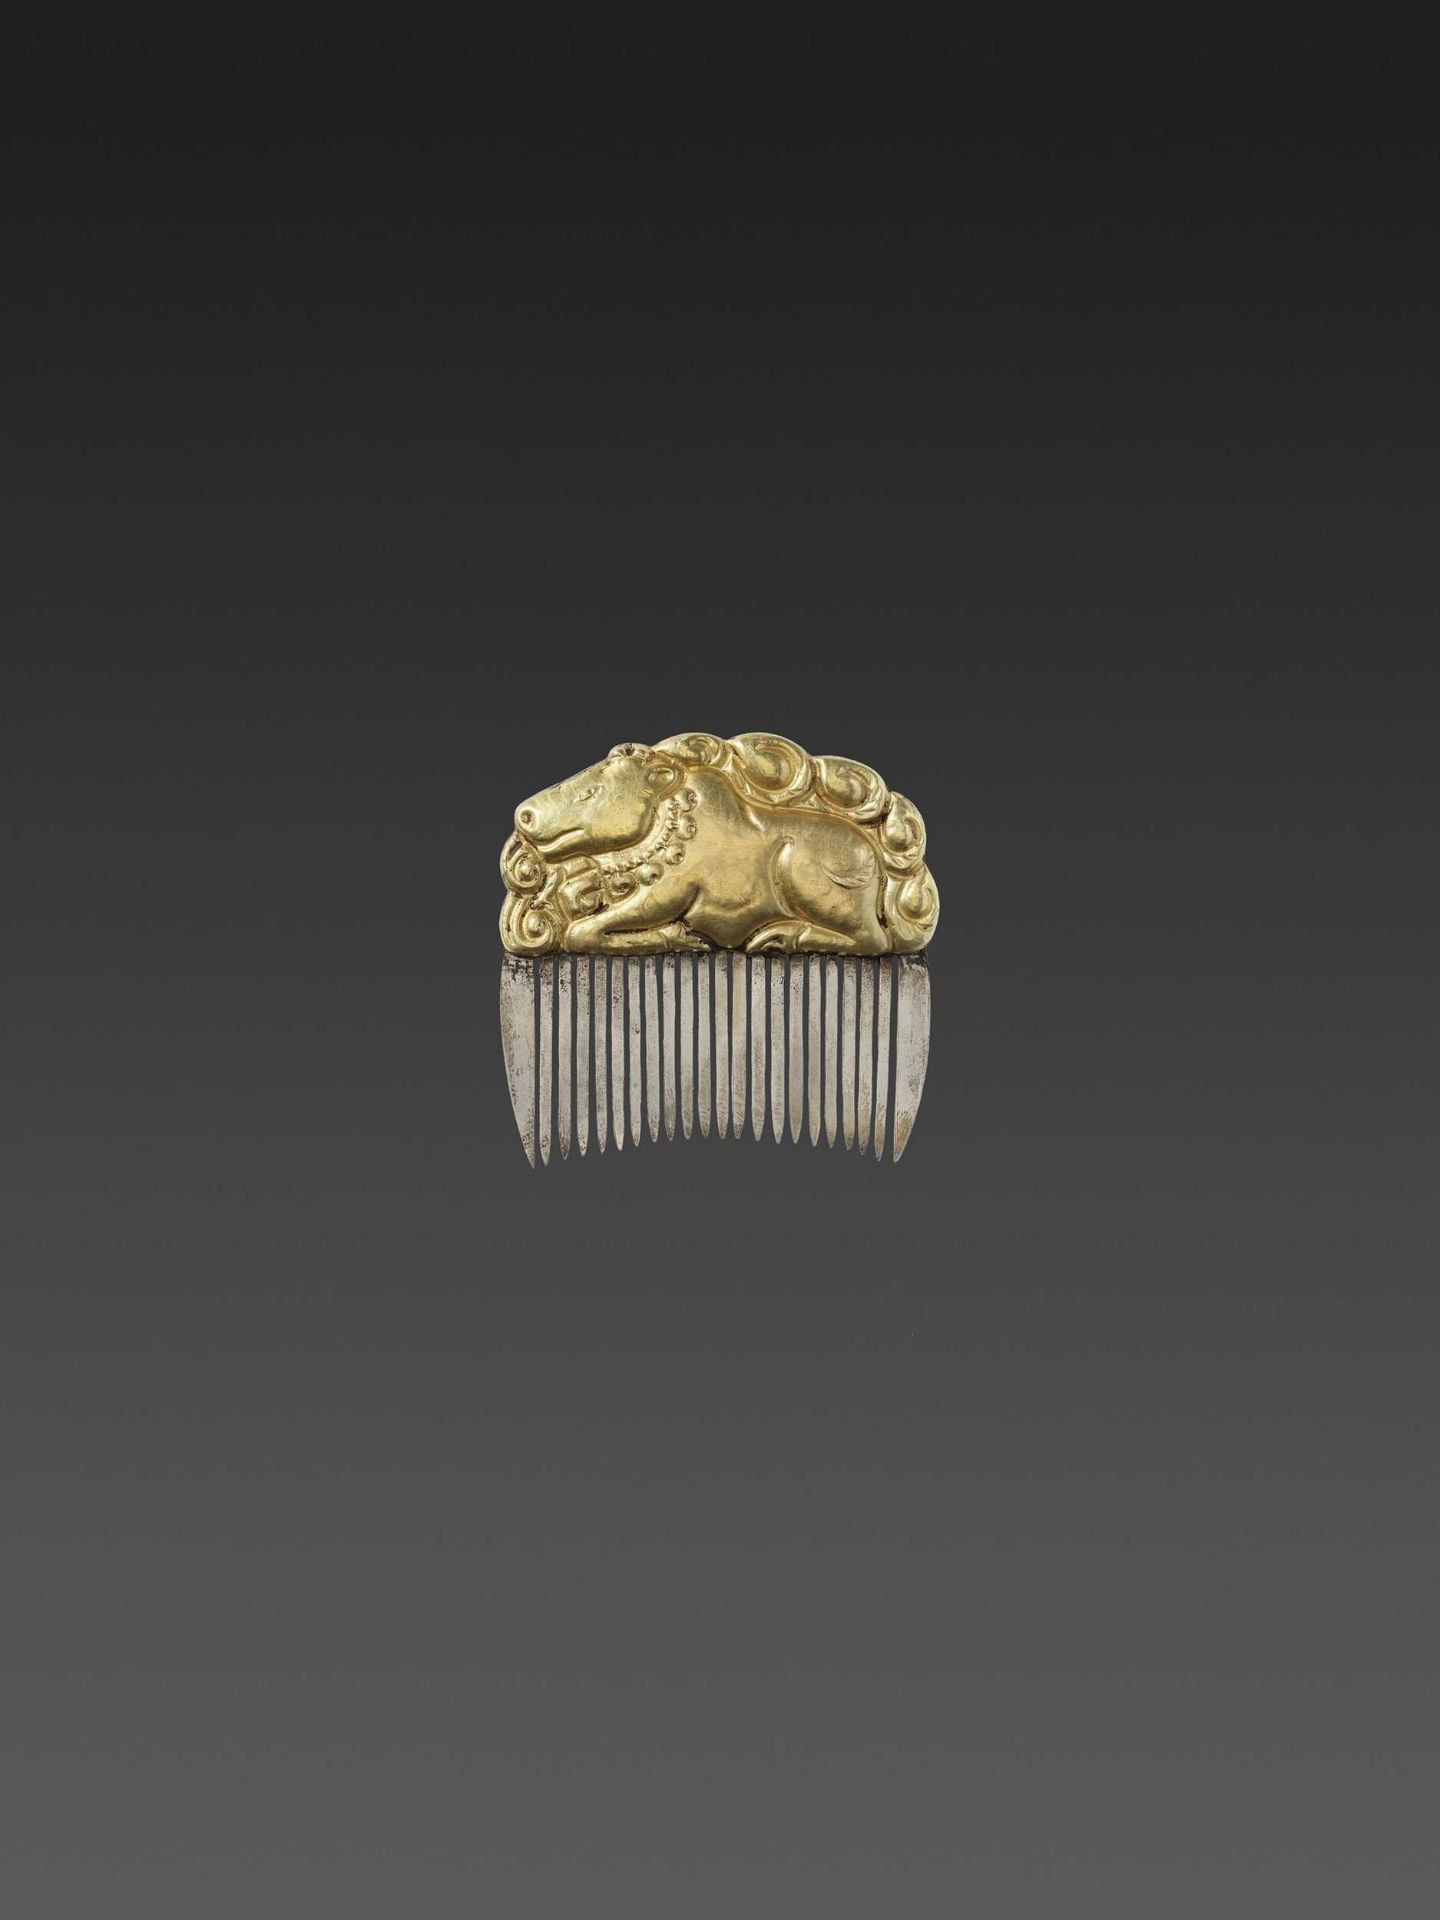 A CHAM GOLD REPOUSSÉ AND SILVER HAIR COMB WITH NANDI